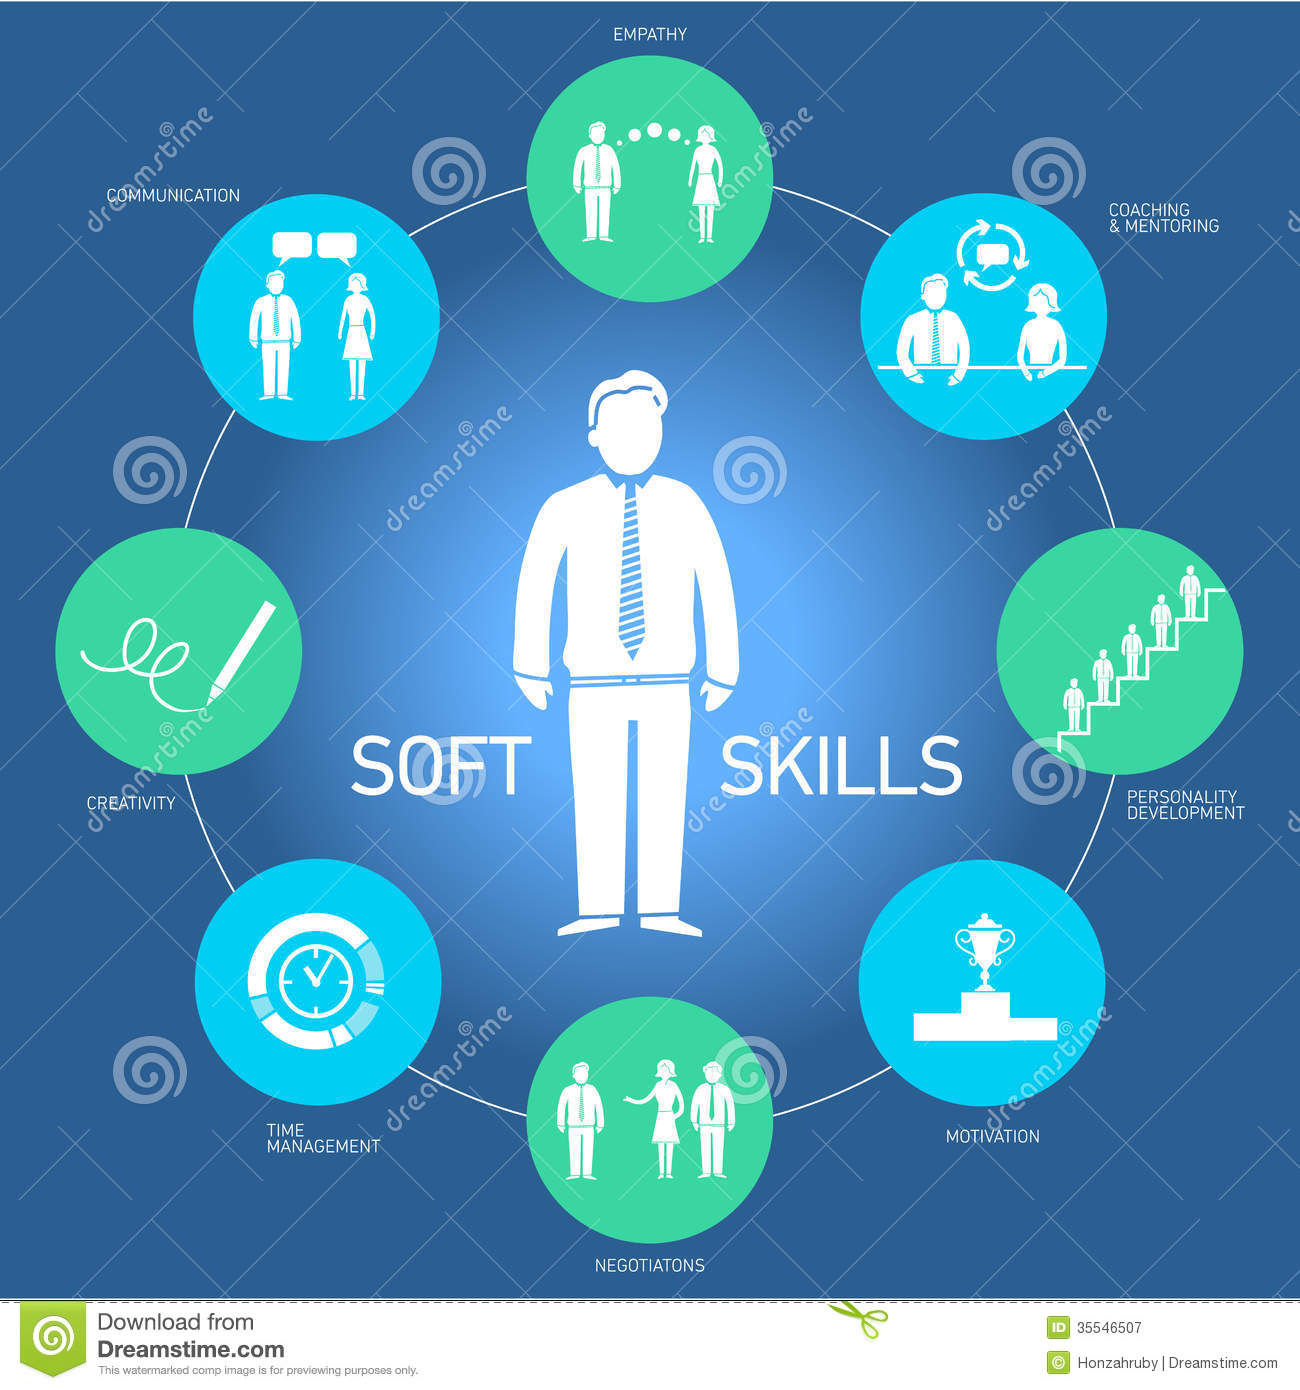 soft-skills-business-icons-set-pictograms-black-colorfulf-background-35546507.jpg